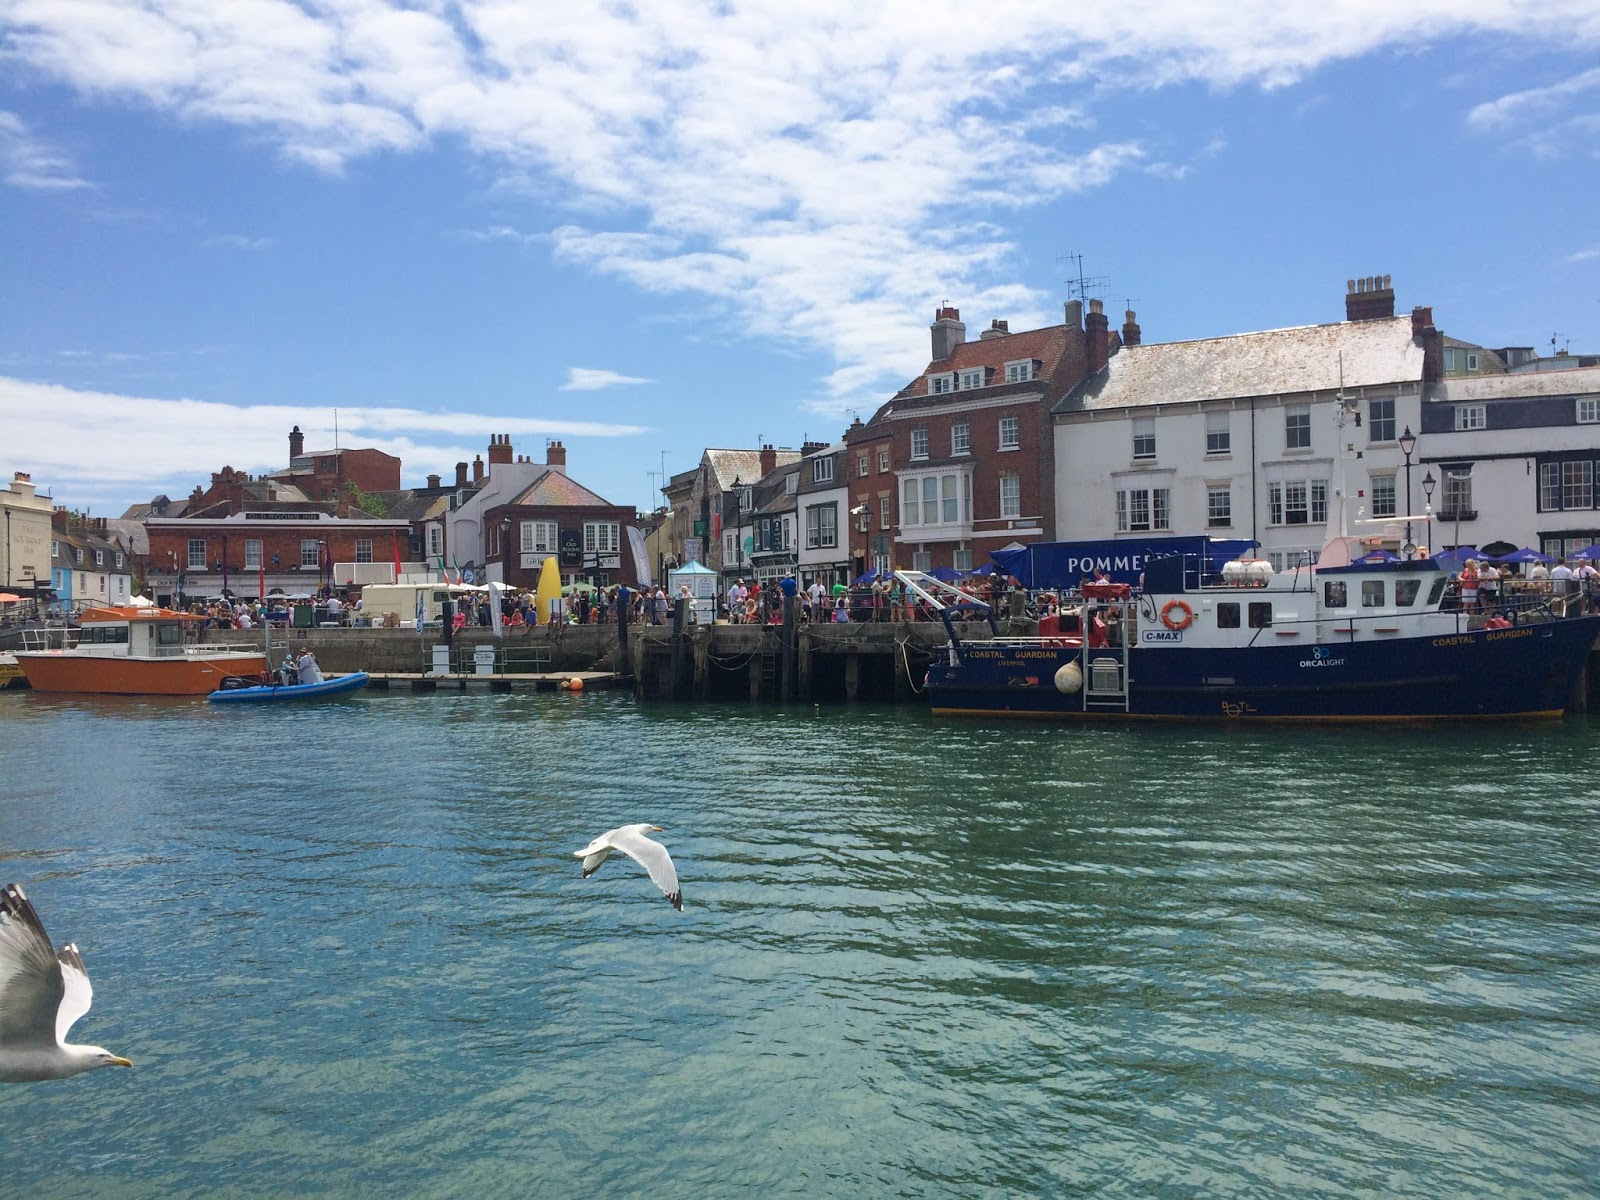 Pommery Dorset Seafood Festival in Weymouth, Weymouth Harbouri, street food, food bloggers, lifestyle bloggers